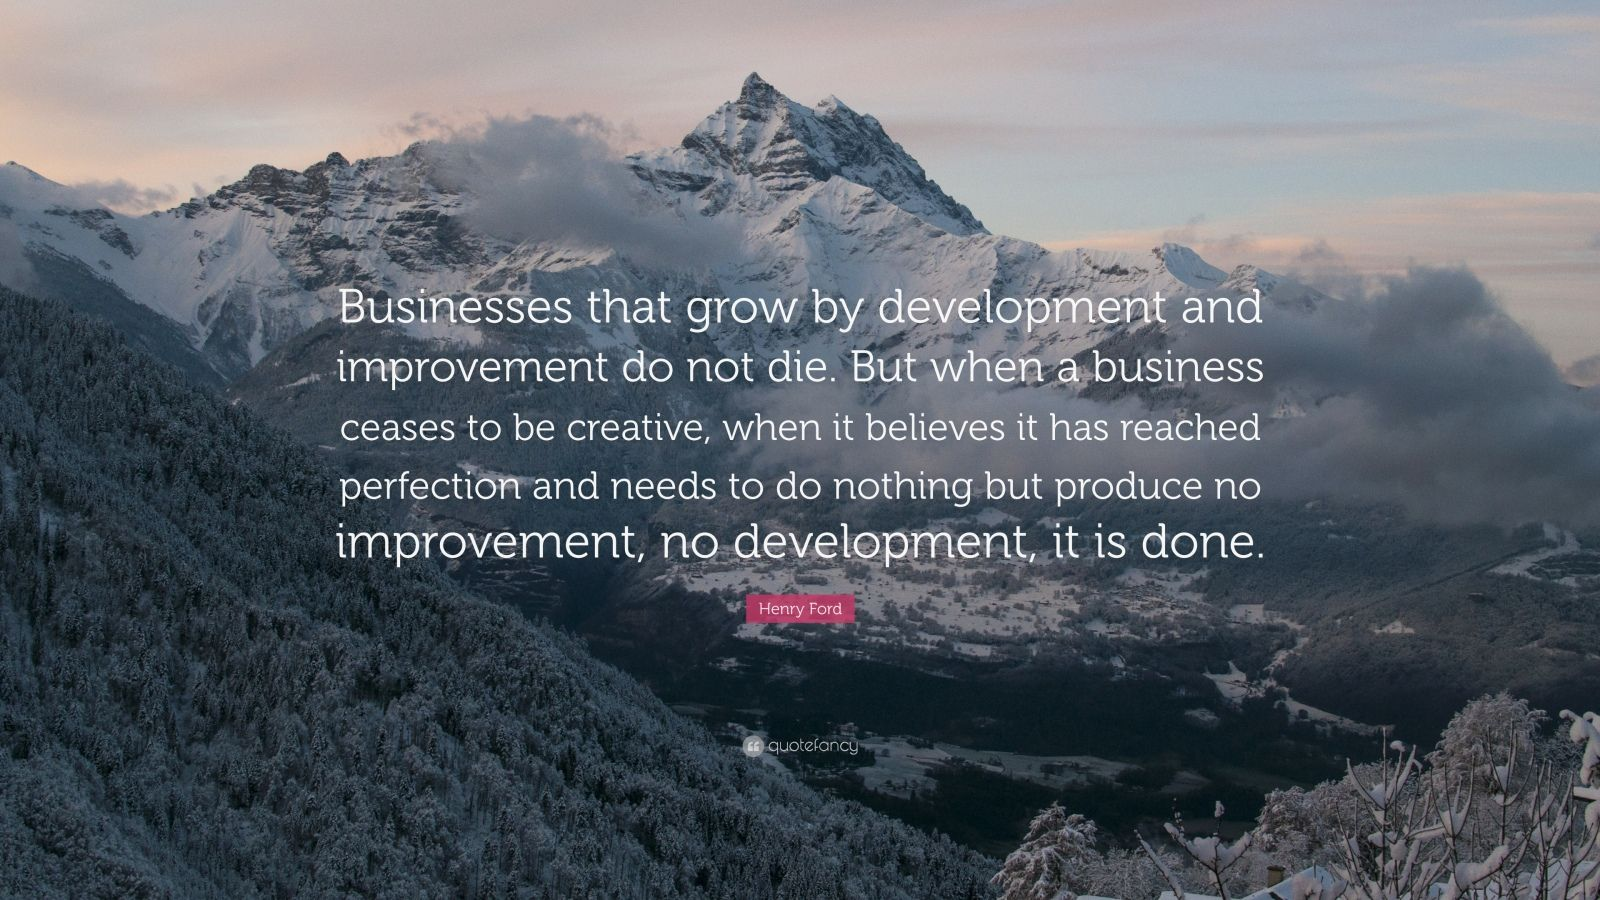 "Henry Ford Quote: ""Businesses that grow by development and improvement do not die. But when a business ceases to be creative, when it believes it has reached perfection and needs to do nothing but produce no improvement, no development, it is done."""